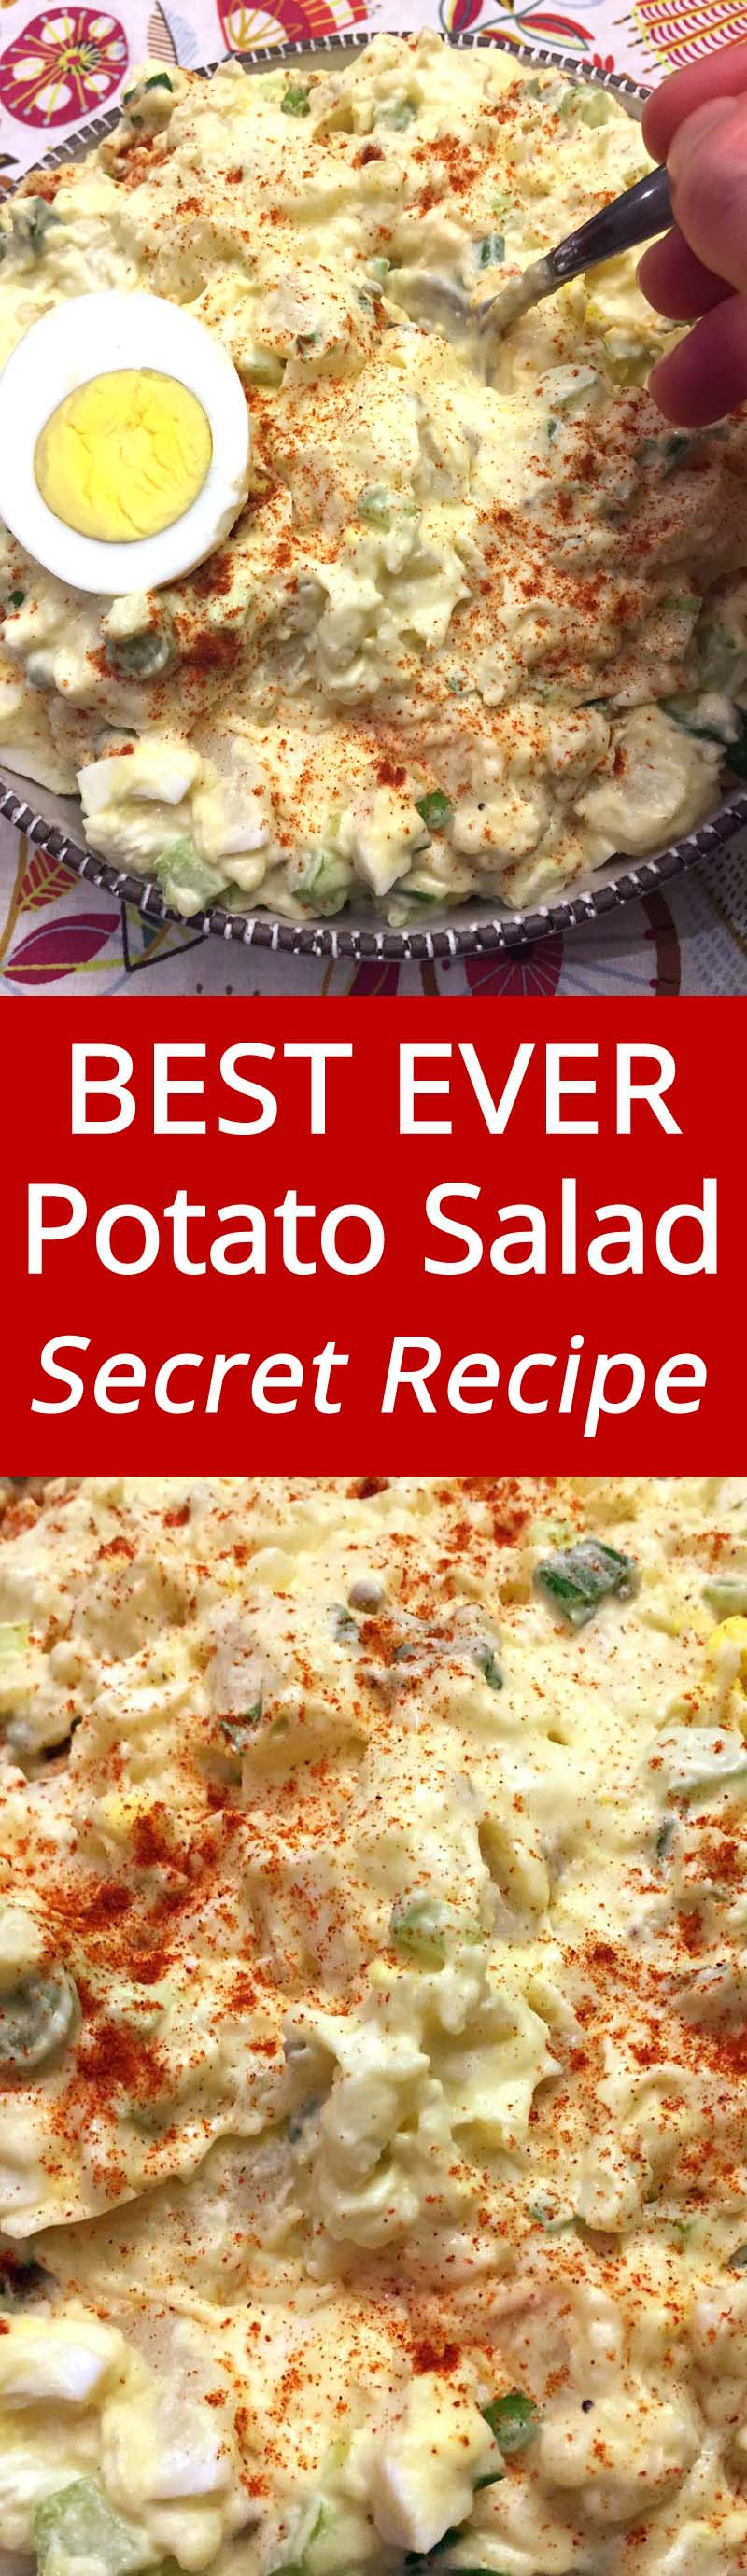 True winner! Everyone raves about it! This easy potato salad recipe is amazing!